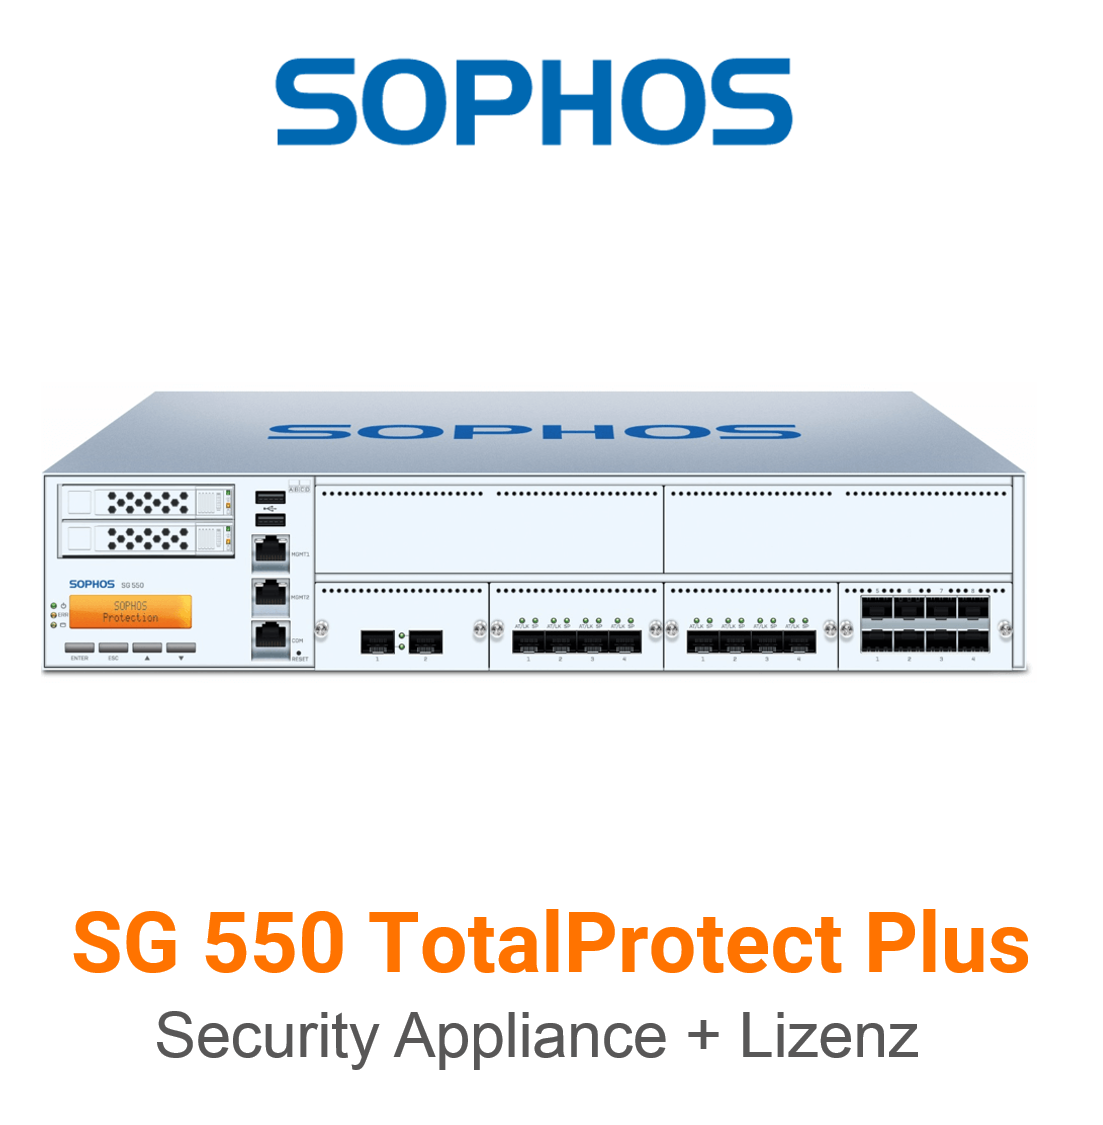 Sophos SG 550 TotalProtect Plus Bundle (Hardware + Lizenz)